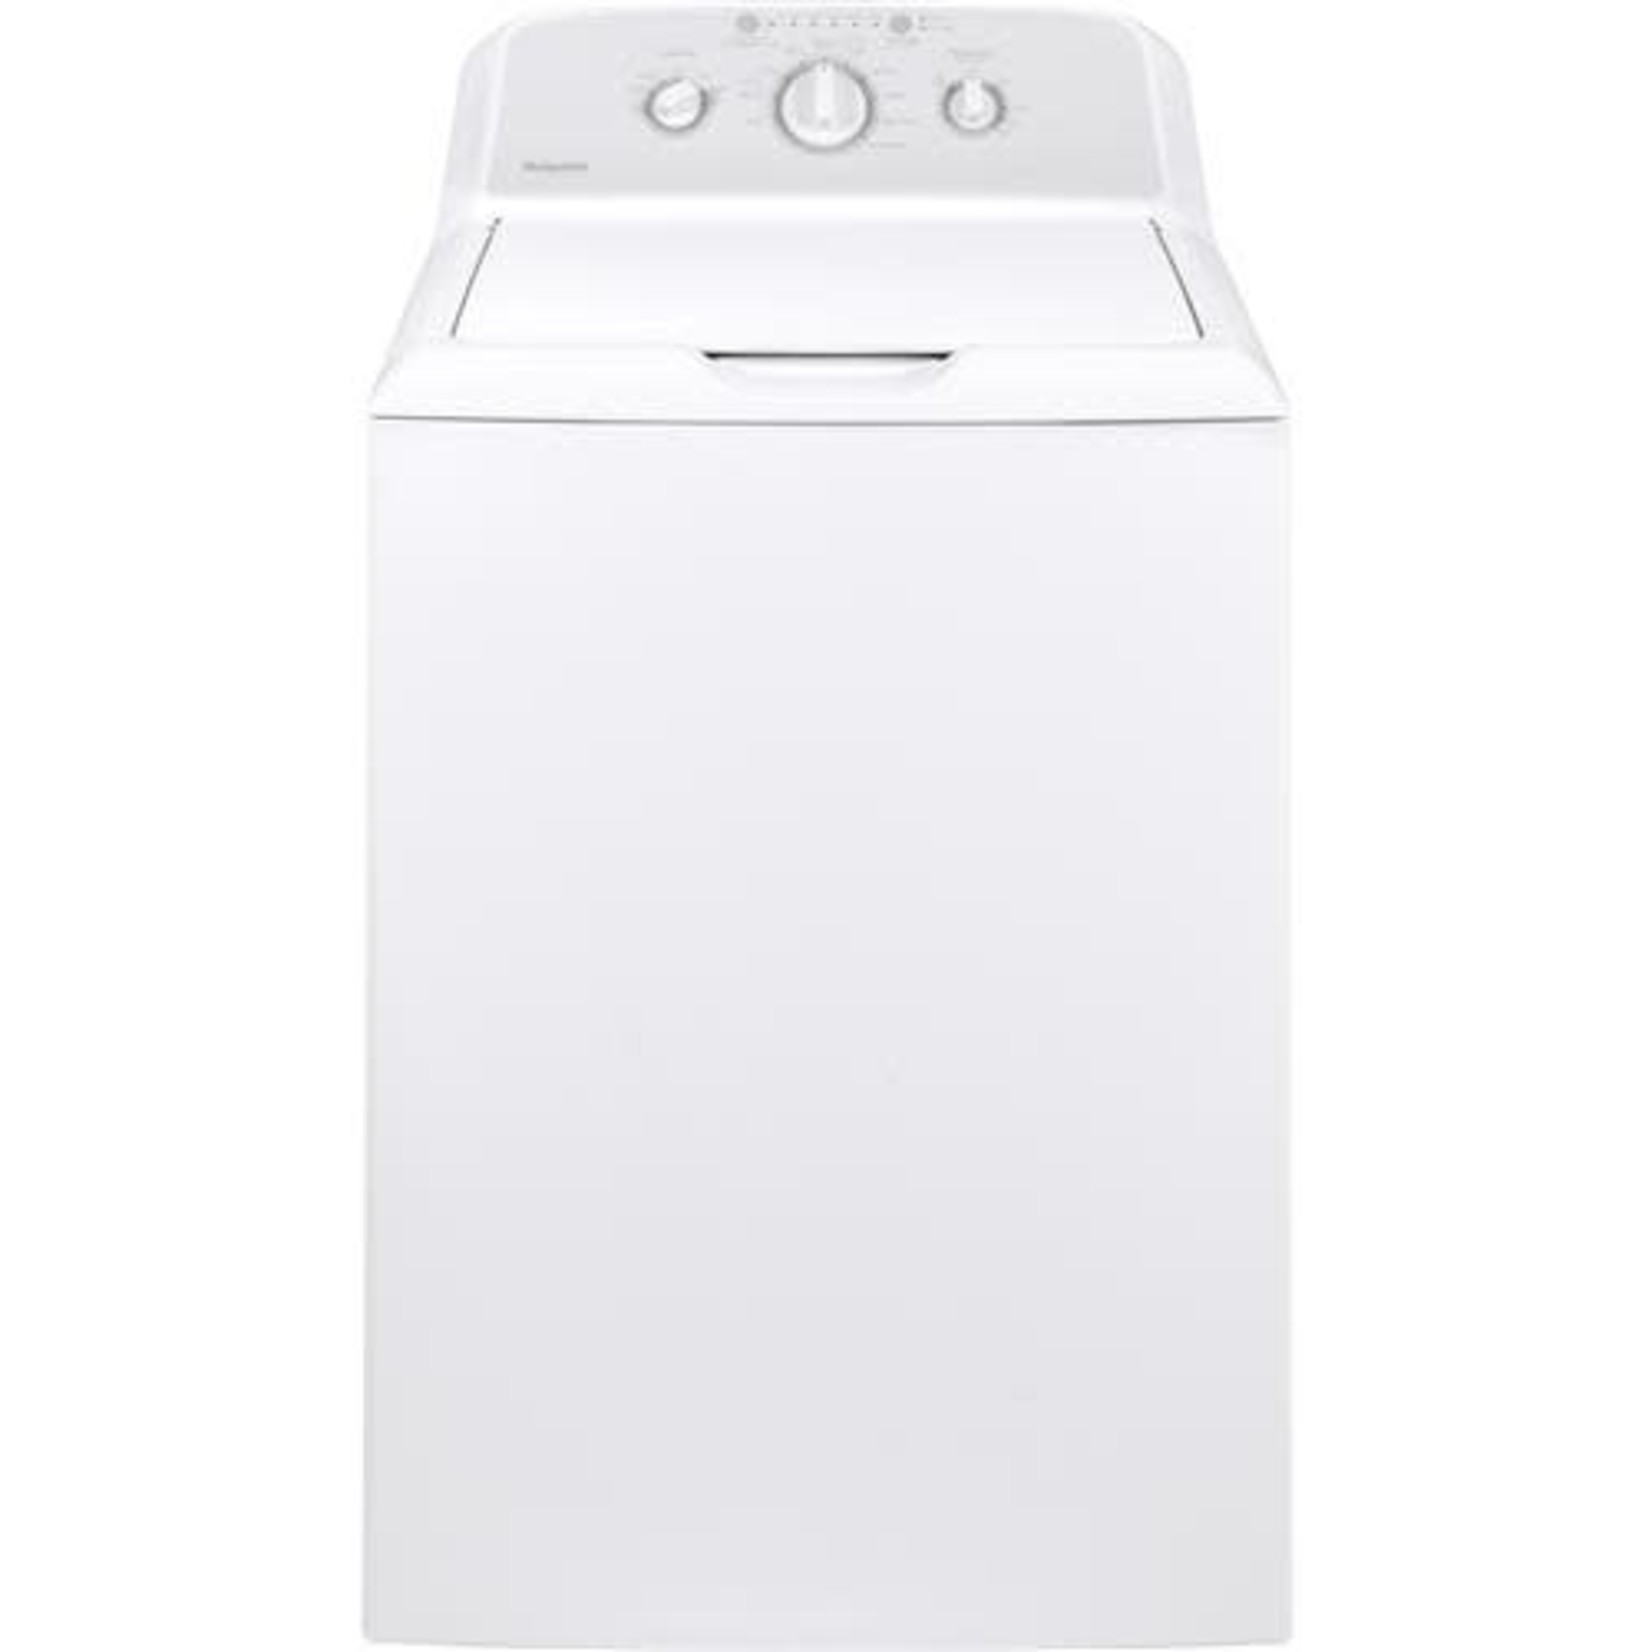 HotPoint 3.8 Cu Ft. Washer